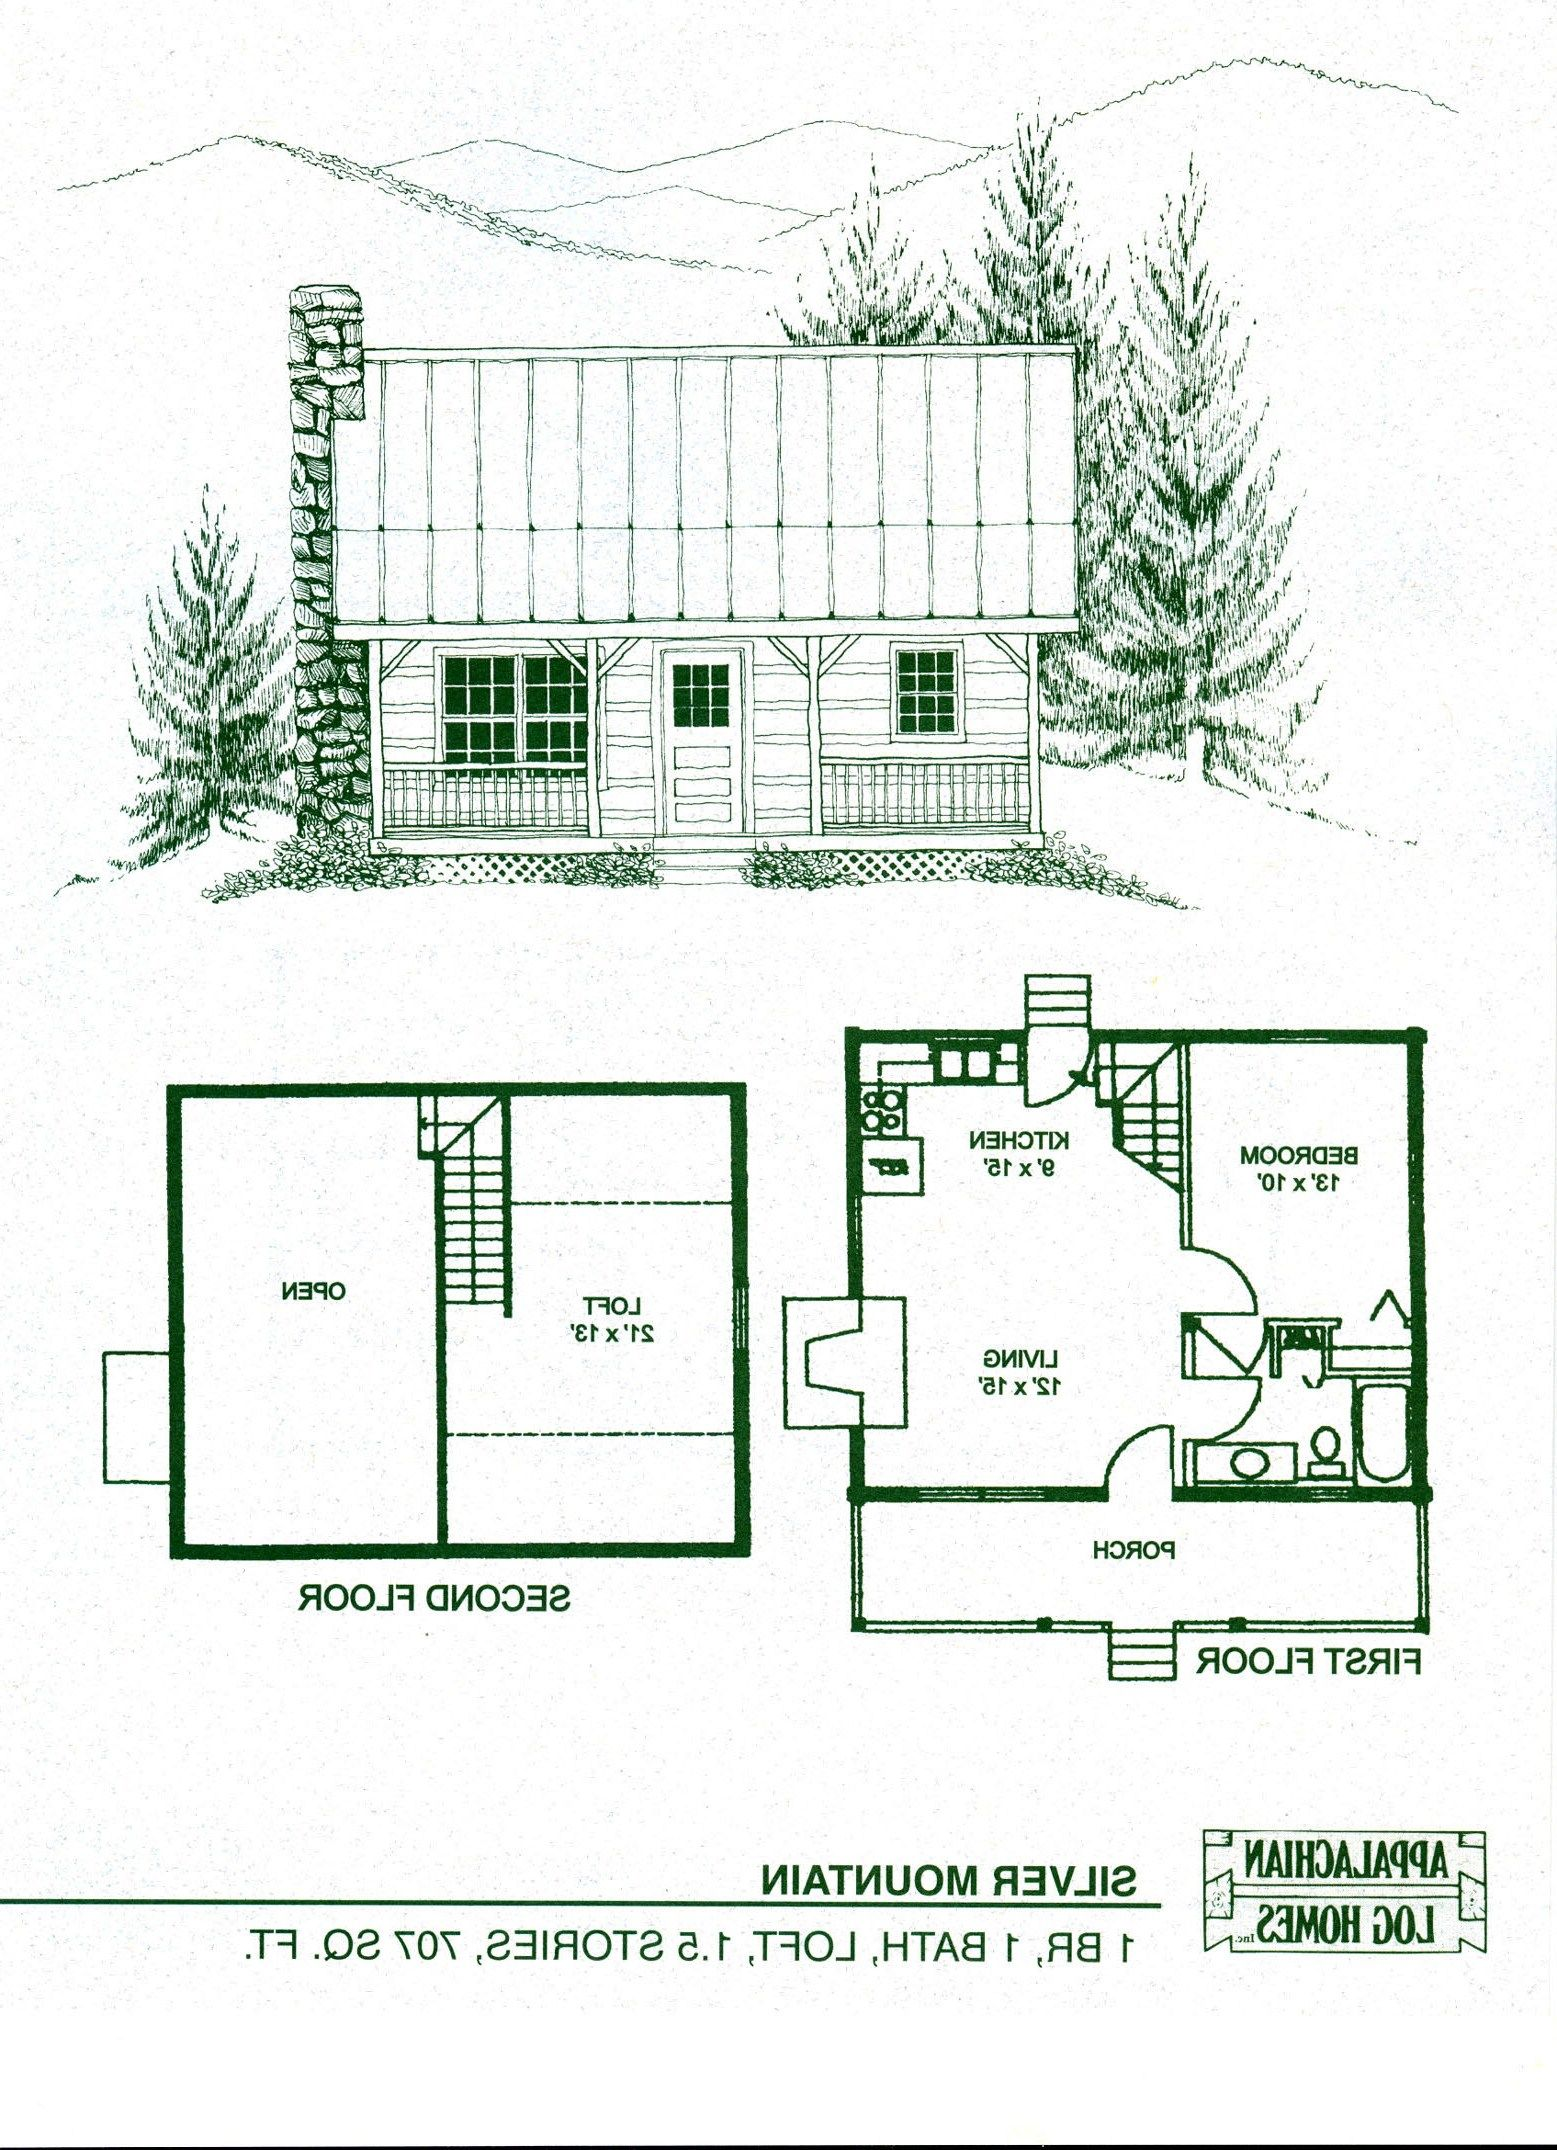 Floor Plans Designs Cottage Cabin House Plans Frame House Plans Pdf Diy Cabin Plans Download Cabinet M Loft Floor Plans Cabin Plans With Loft Small Cabin Plans